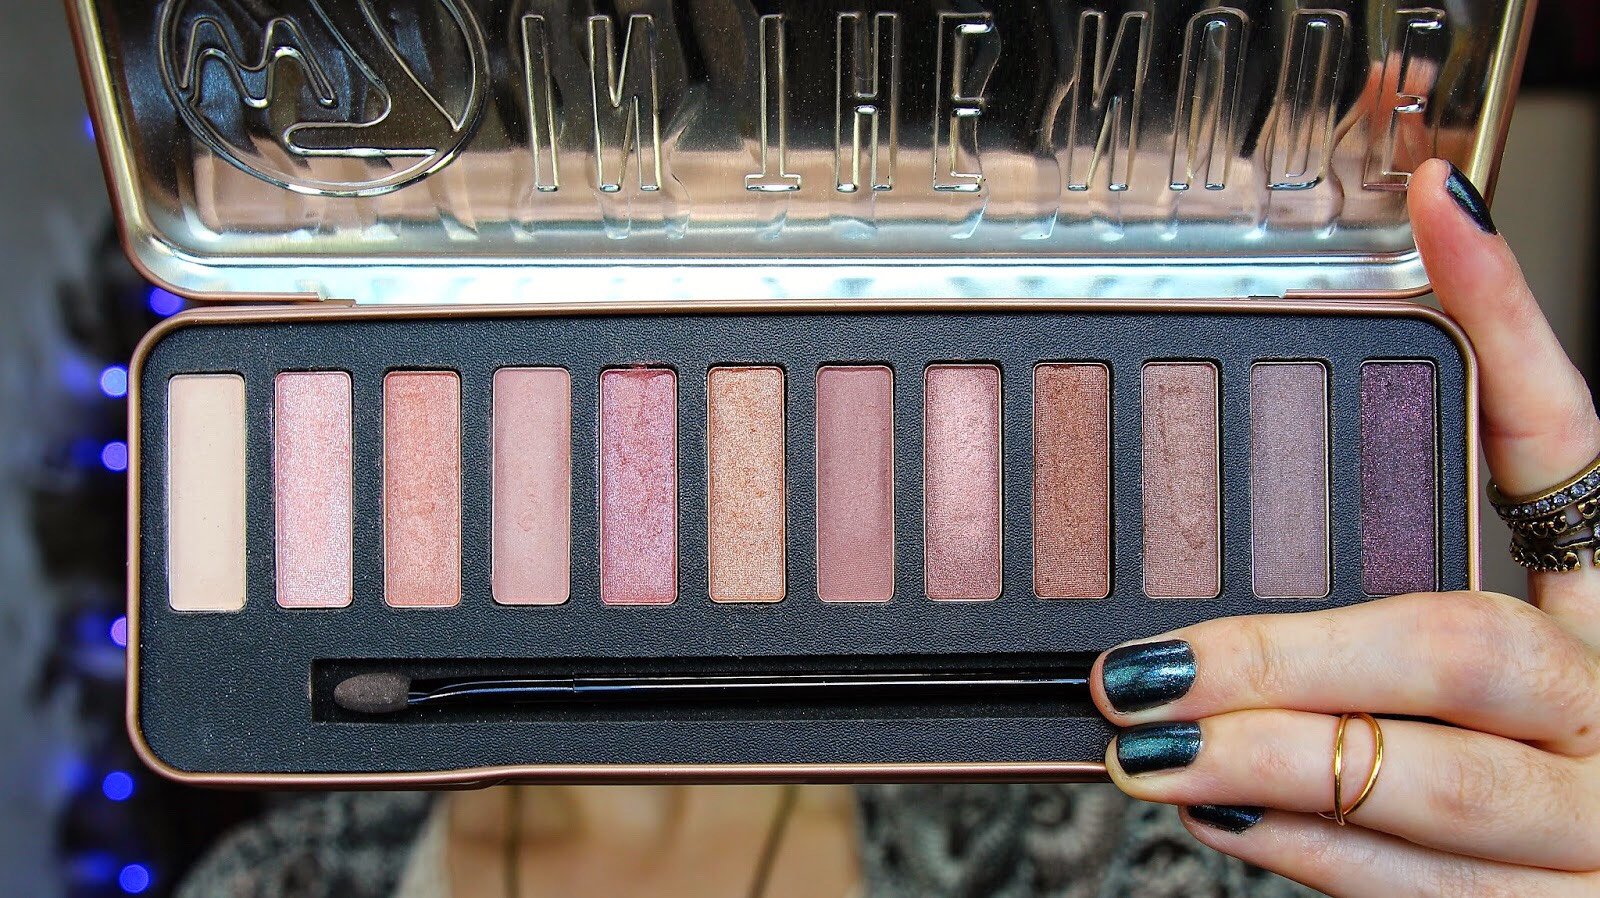 the W7 'In The Buff' Palette is a dupe for Urban Decay's Naked 3😉